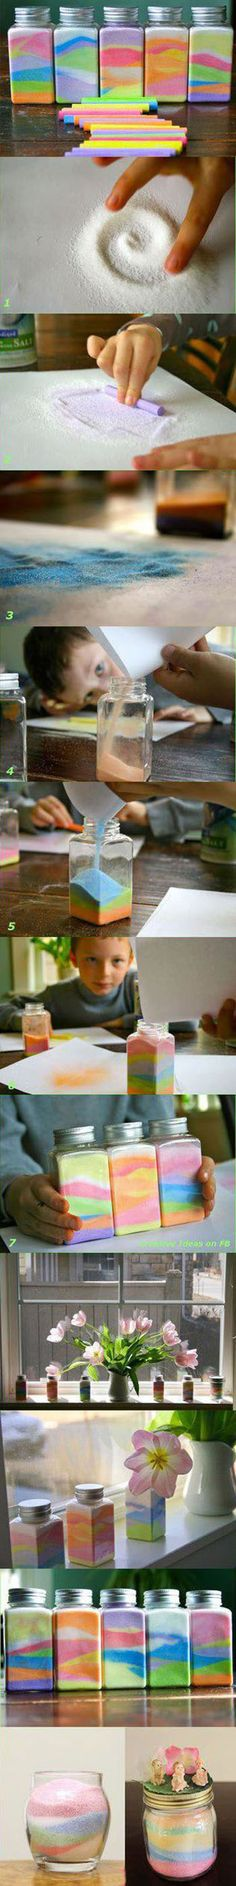 Diy Beautiful Jar Crafts *edit* verry easy to do. I used a small bottle to make a rainbow of coloured sand. Only took me 10 minutes and some salt and chalk